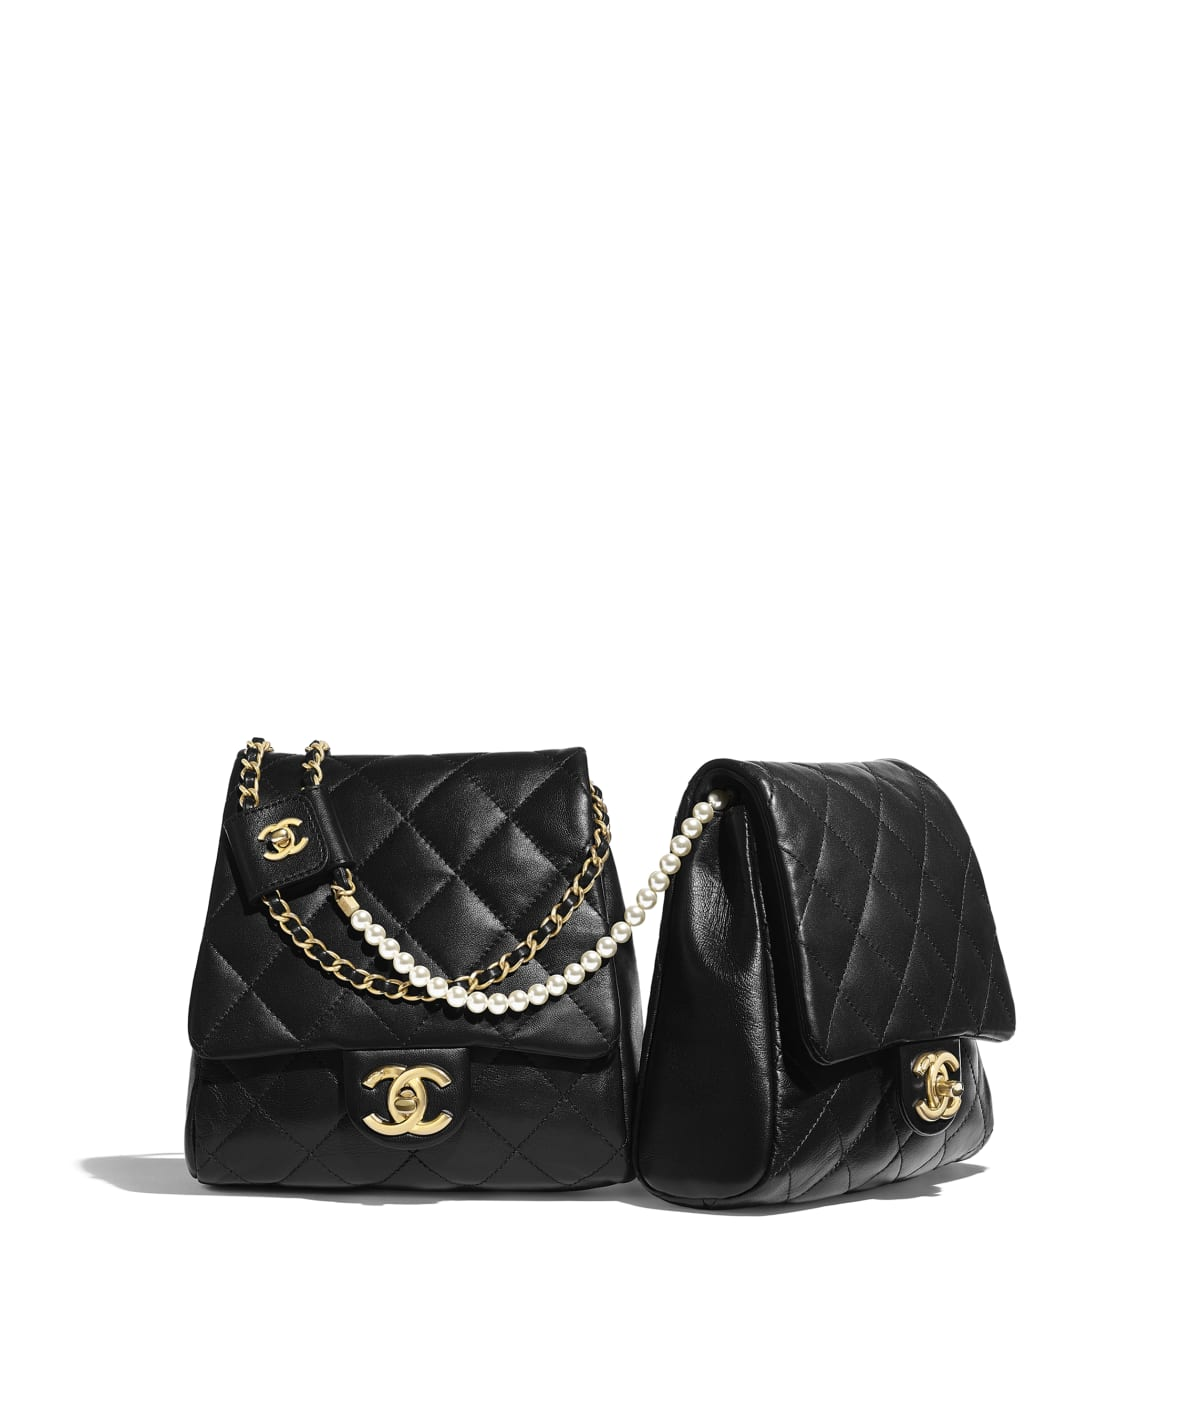 5228260854ff1c Handbags - CHANEL